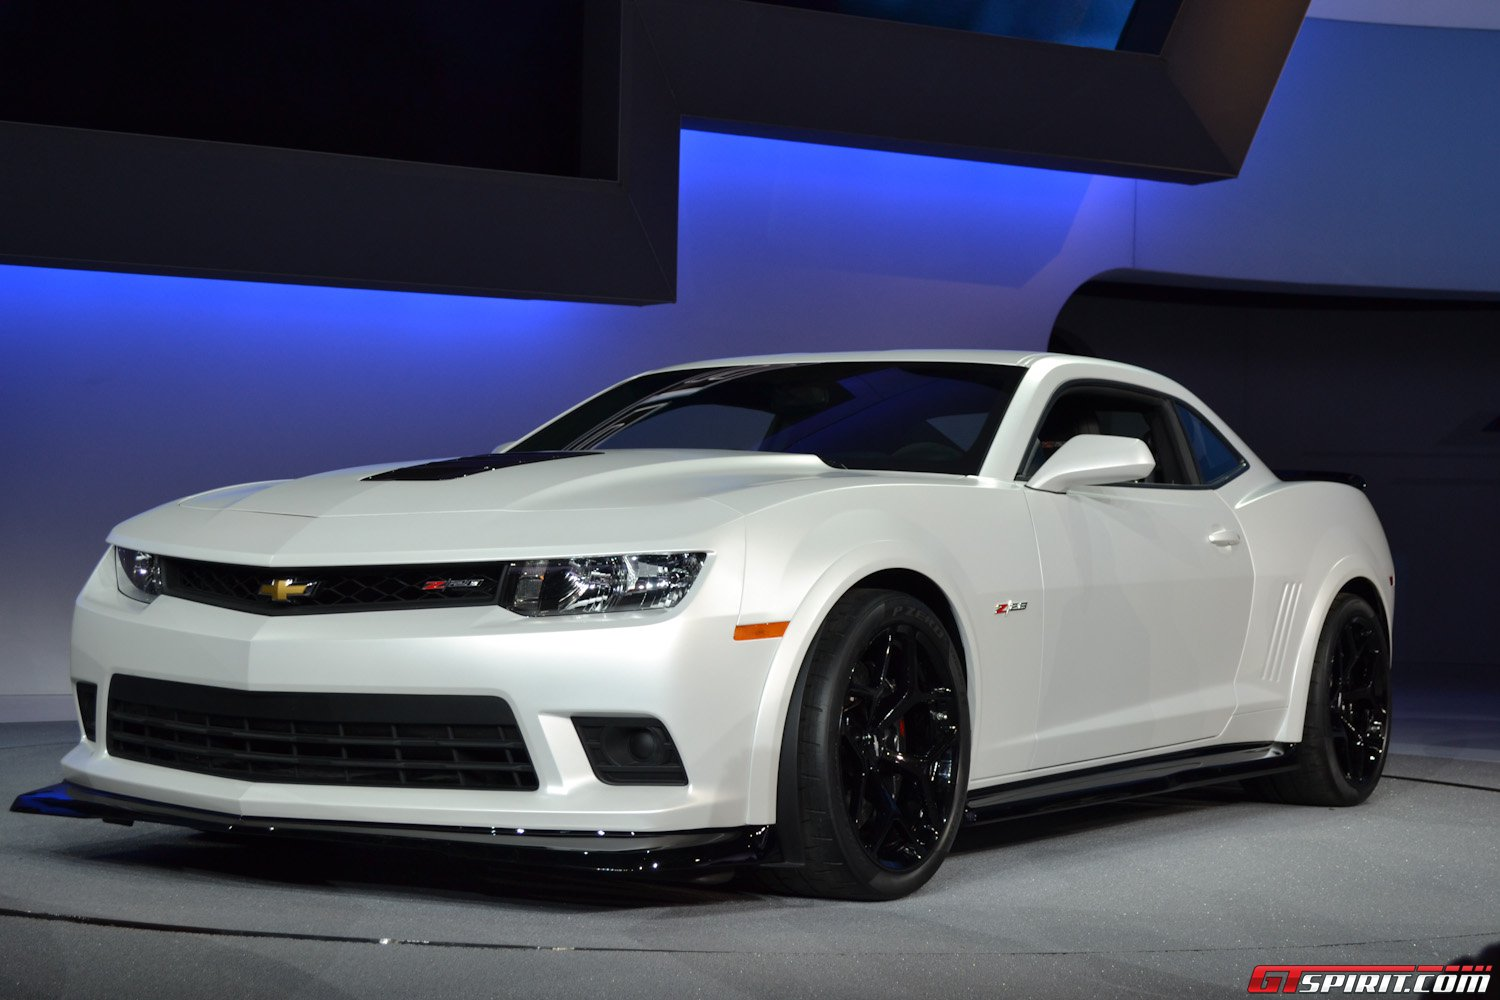 2014 chevrolet camaro z 28 priced 18k above zl1 gtspirit. Black Bedroom Furniture Sets. Home Design Ideas